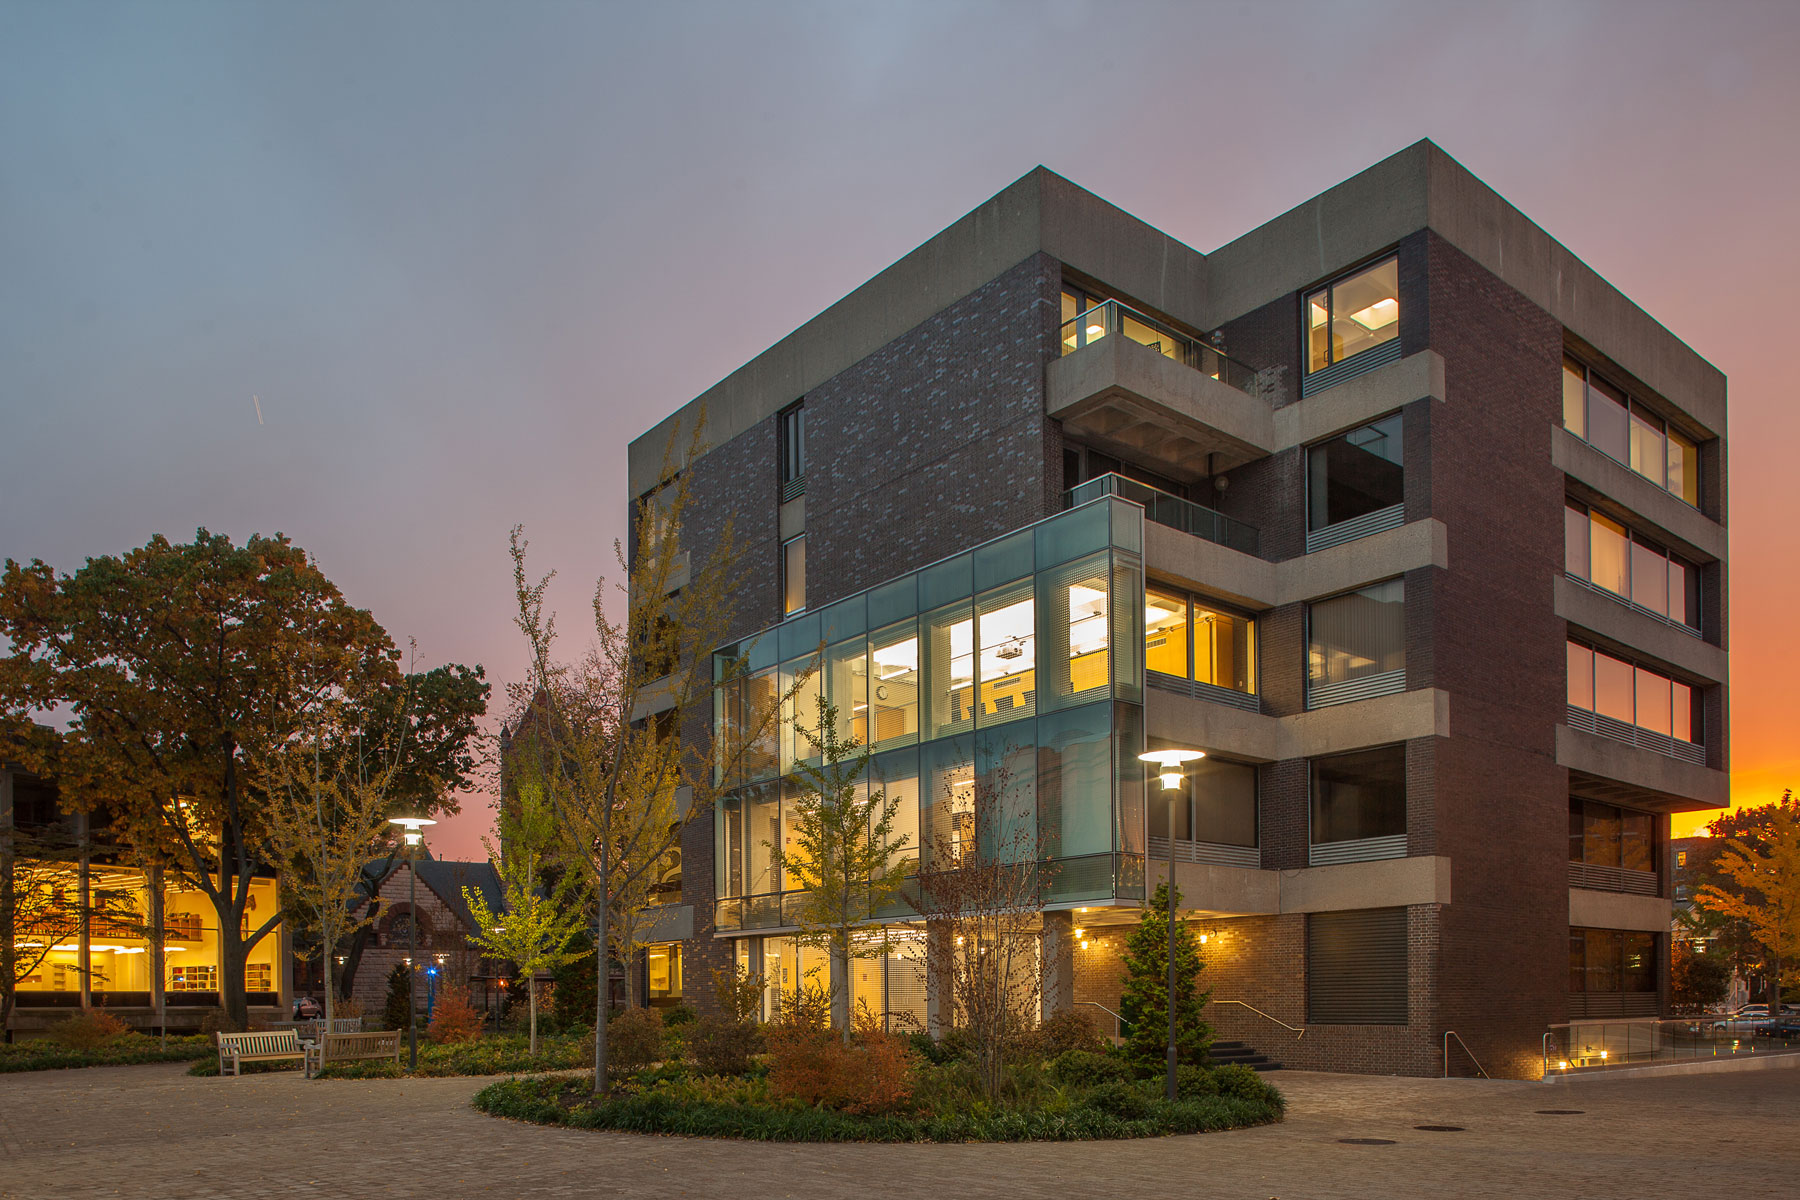 Dusk view of Pound Hall with golden light emanating from a glass facade.